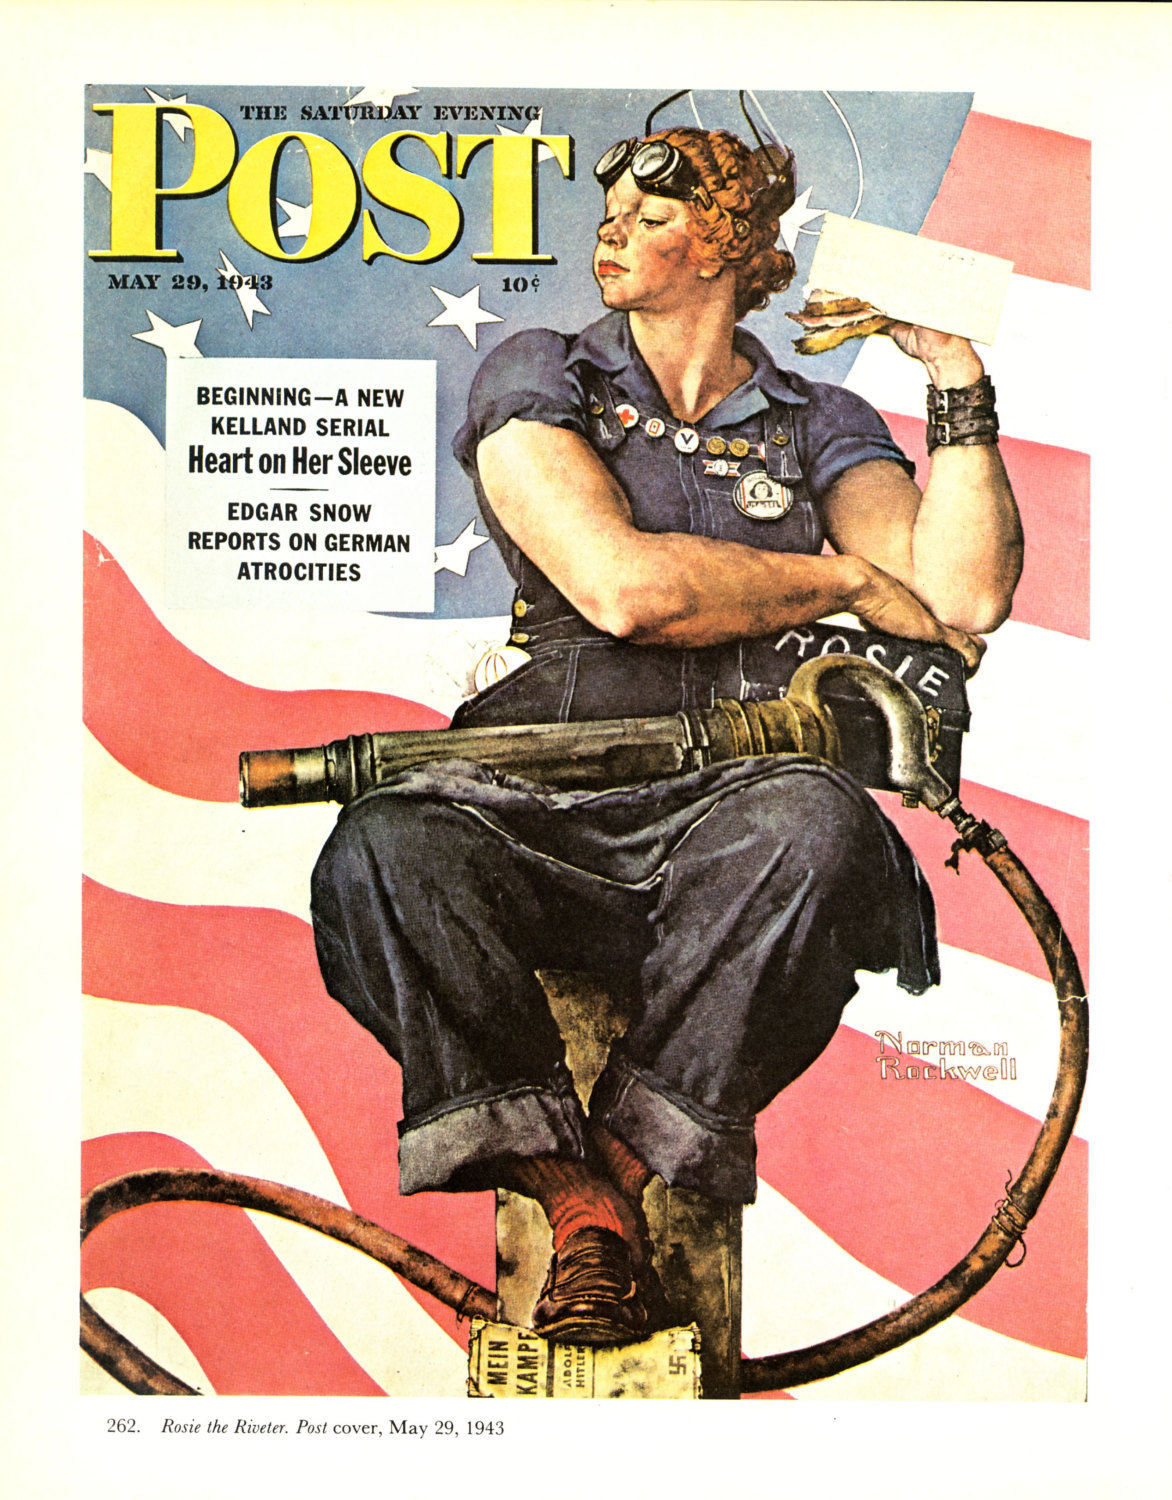 Artist Who Painted Rosie The Riveter